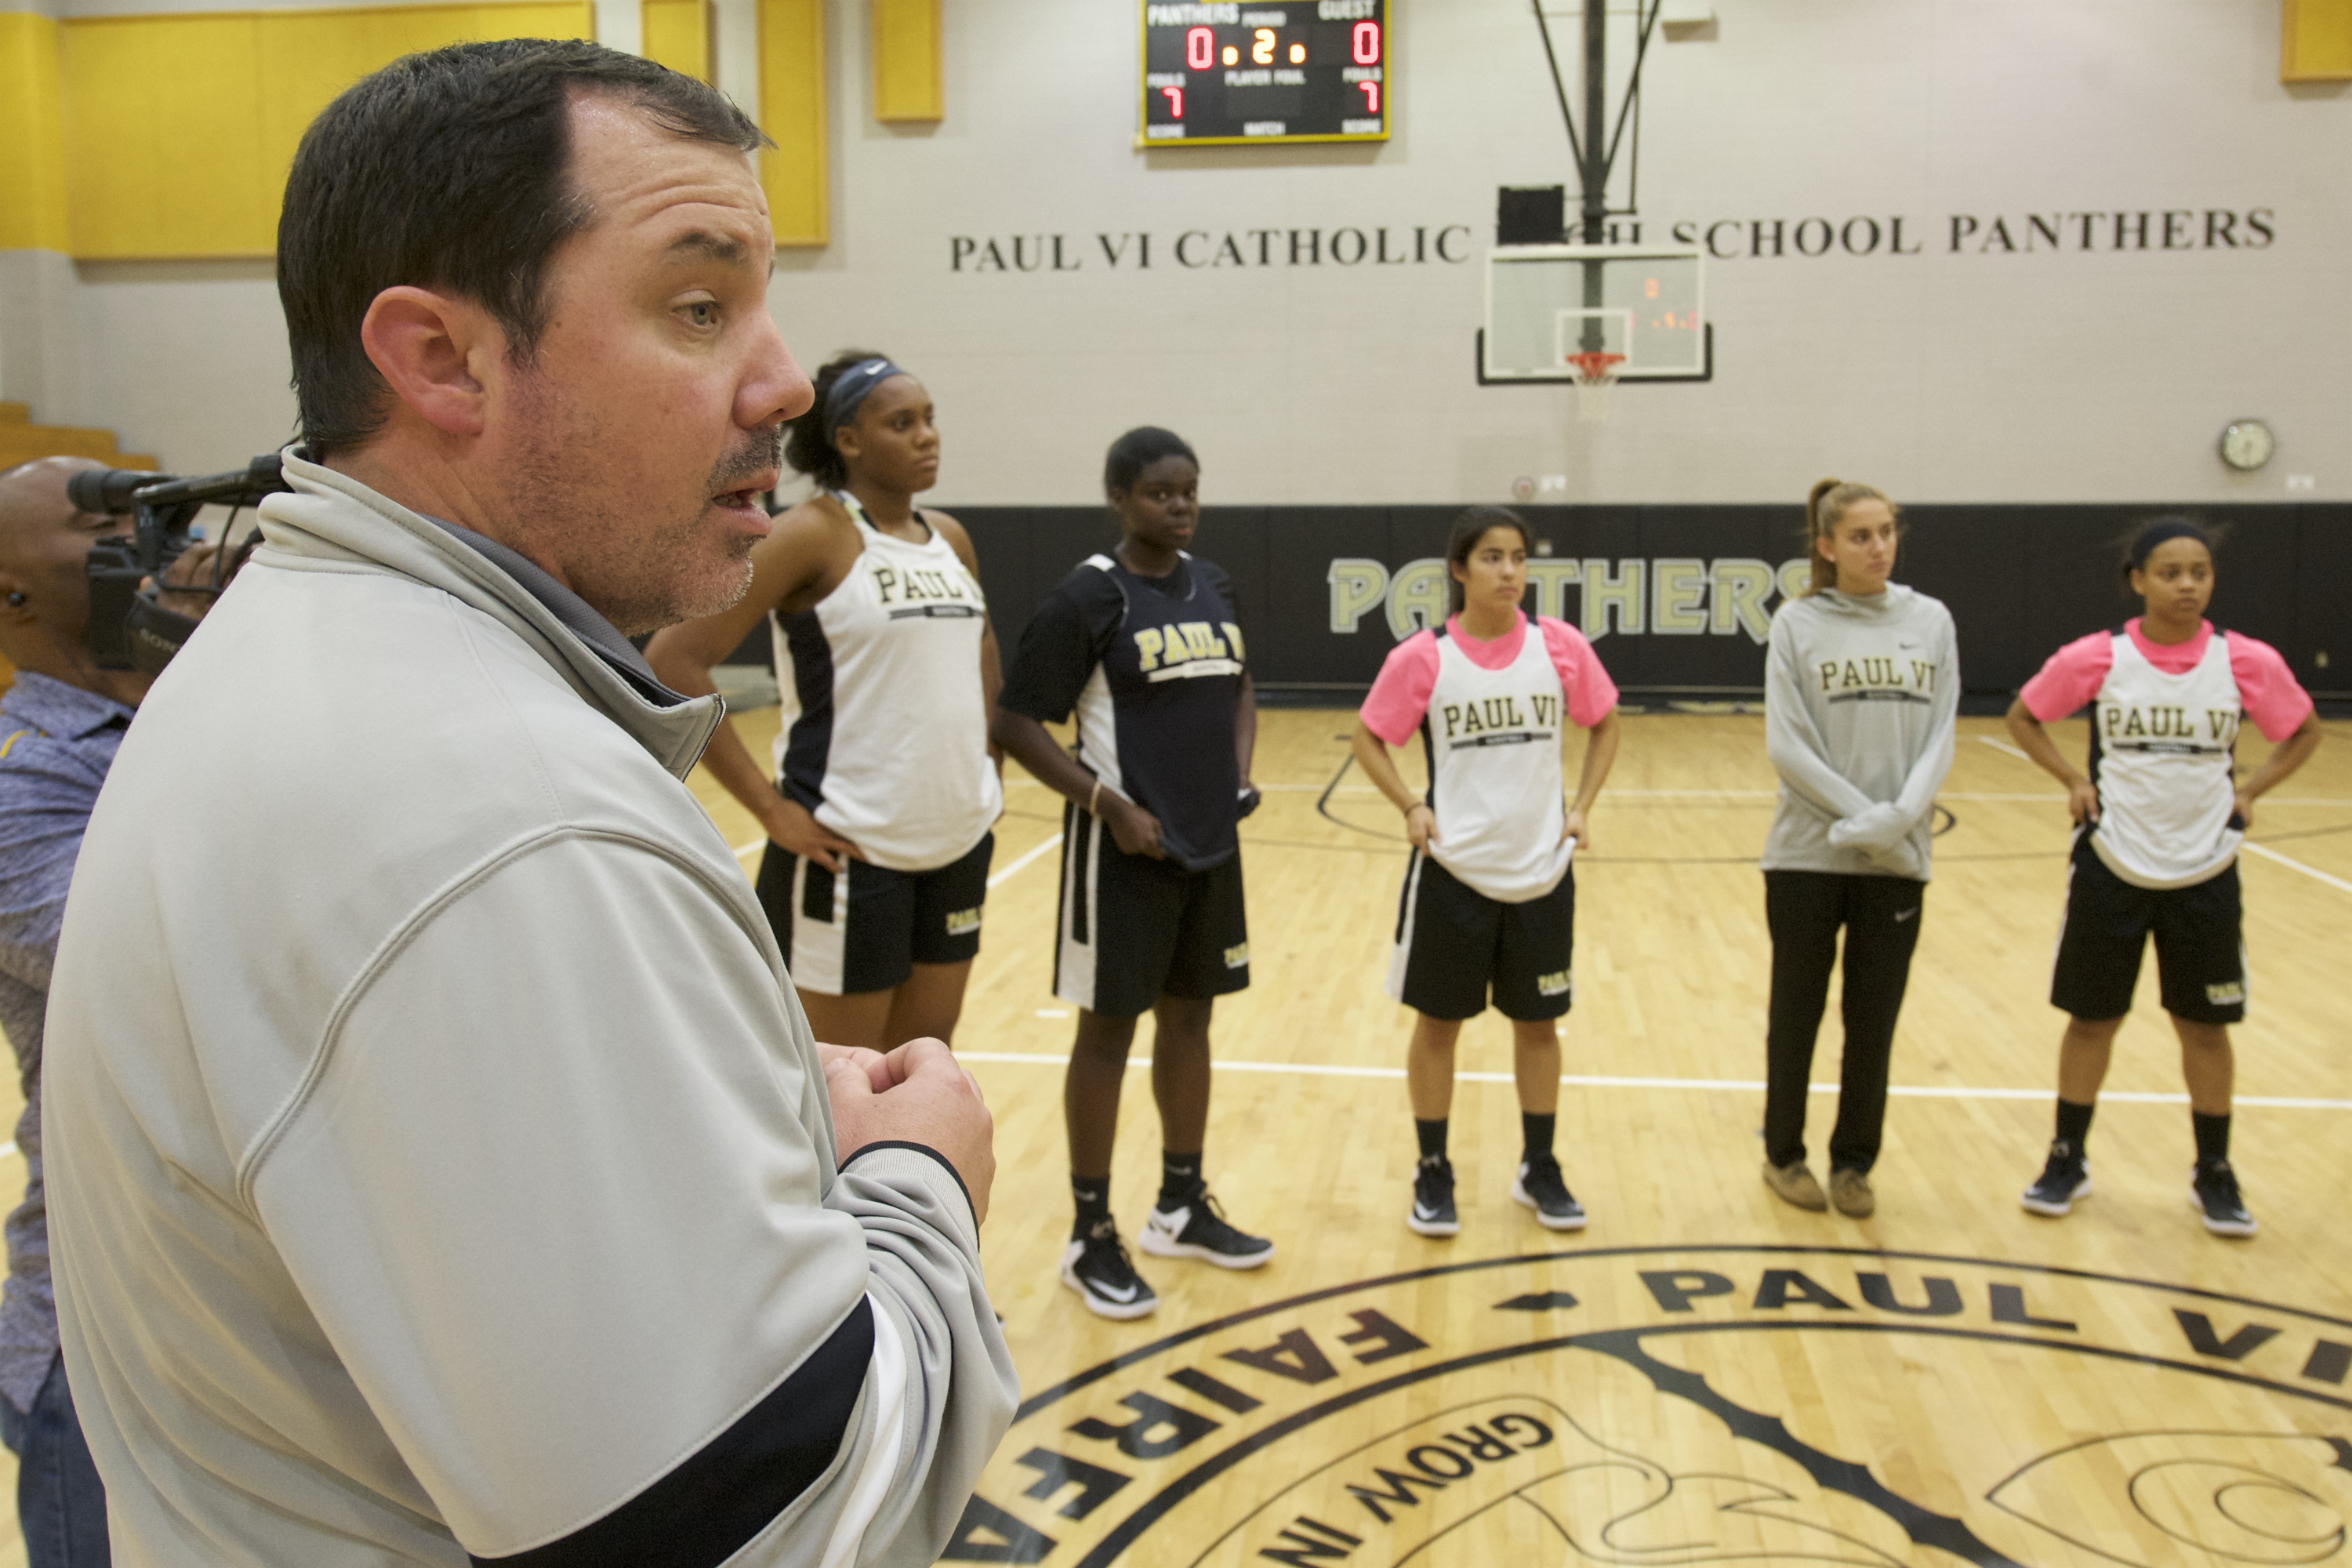 11/14/16 7:29:41 PM -- Fairfax, VA, U.S.A -- Paul VI Catholic High School in Fairfax, Virginia will be one of our top ranked girls basketball teams. Paul VI girl's basketball head coach talks to members of the team after practice. -- Photo by Rafael Suanes/USA TODAY Sports Images, Gannett ORG XMIT: US 135760 Pual VI 11/14/2016 [Via MerlinFTP Drop]